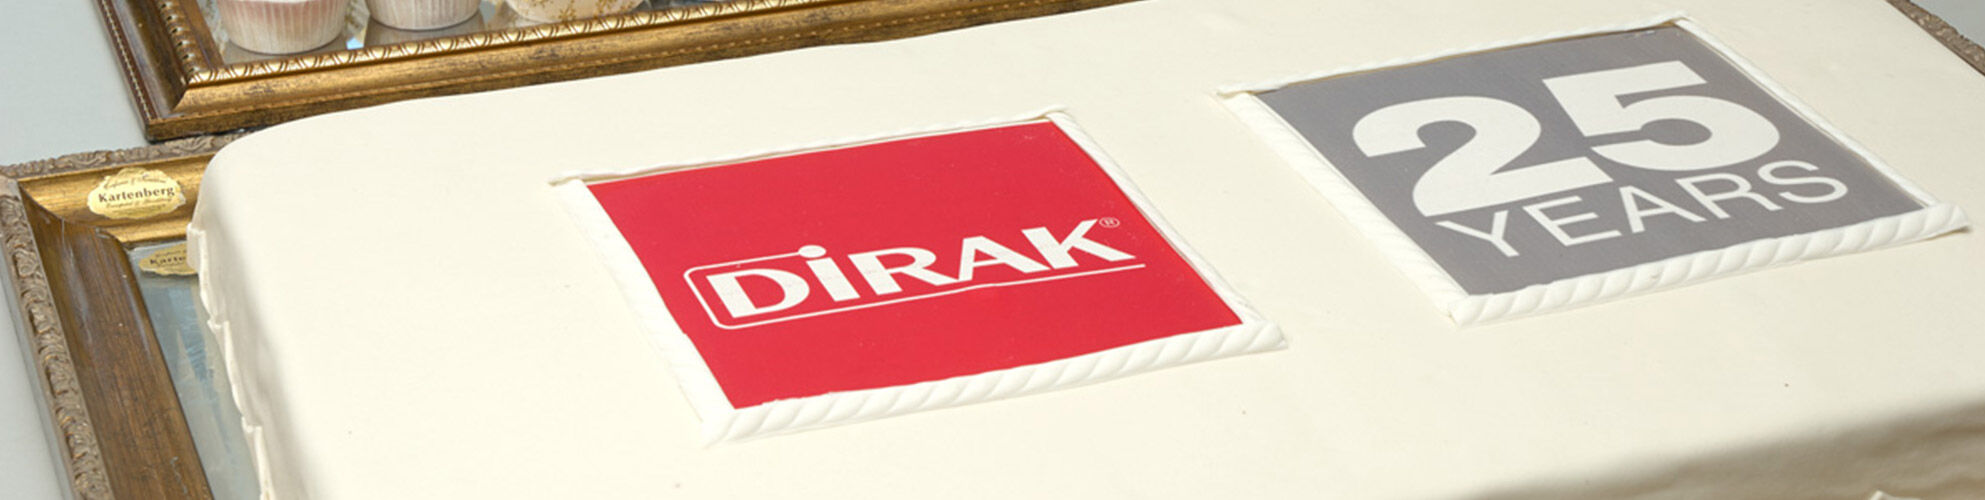 Visit our website www.dirak.com and explore 25 years sustainable development!